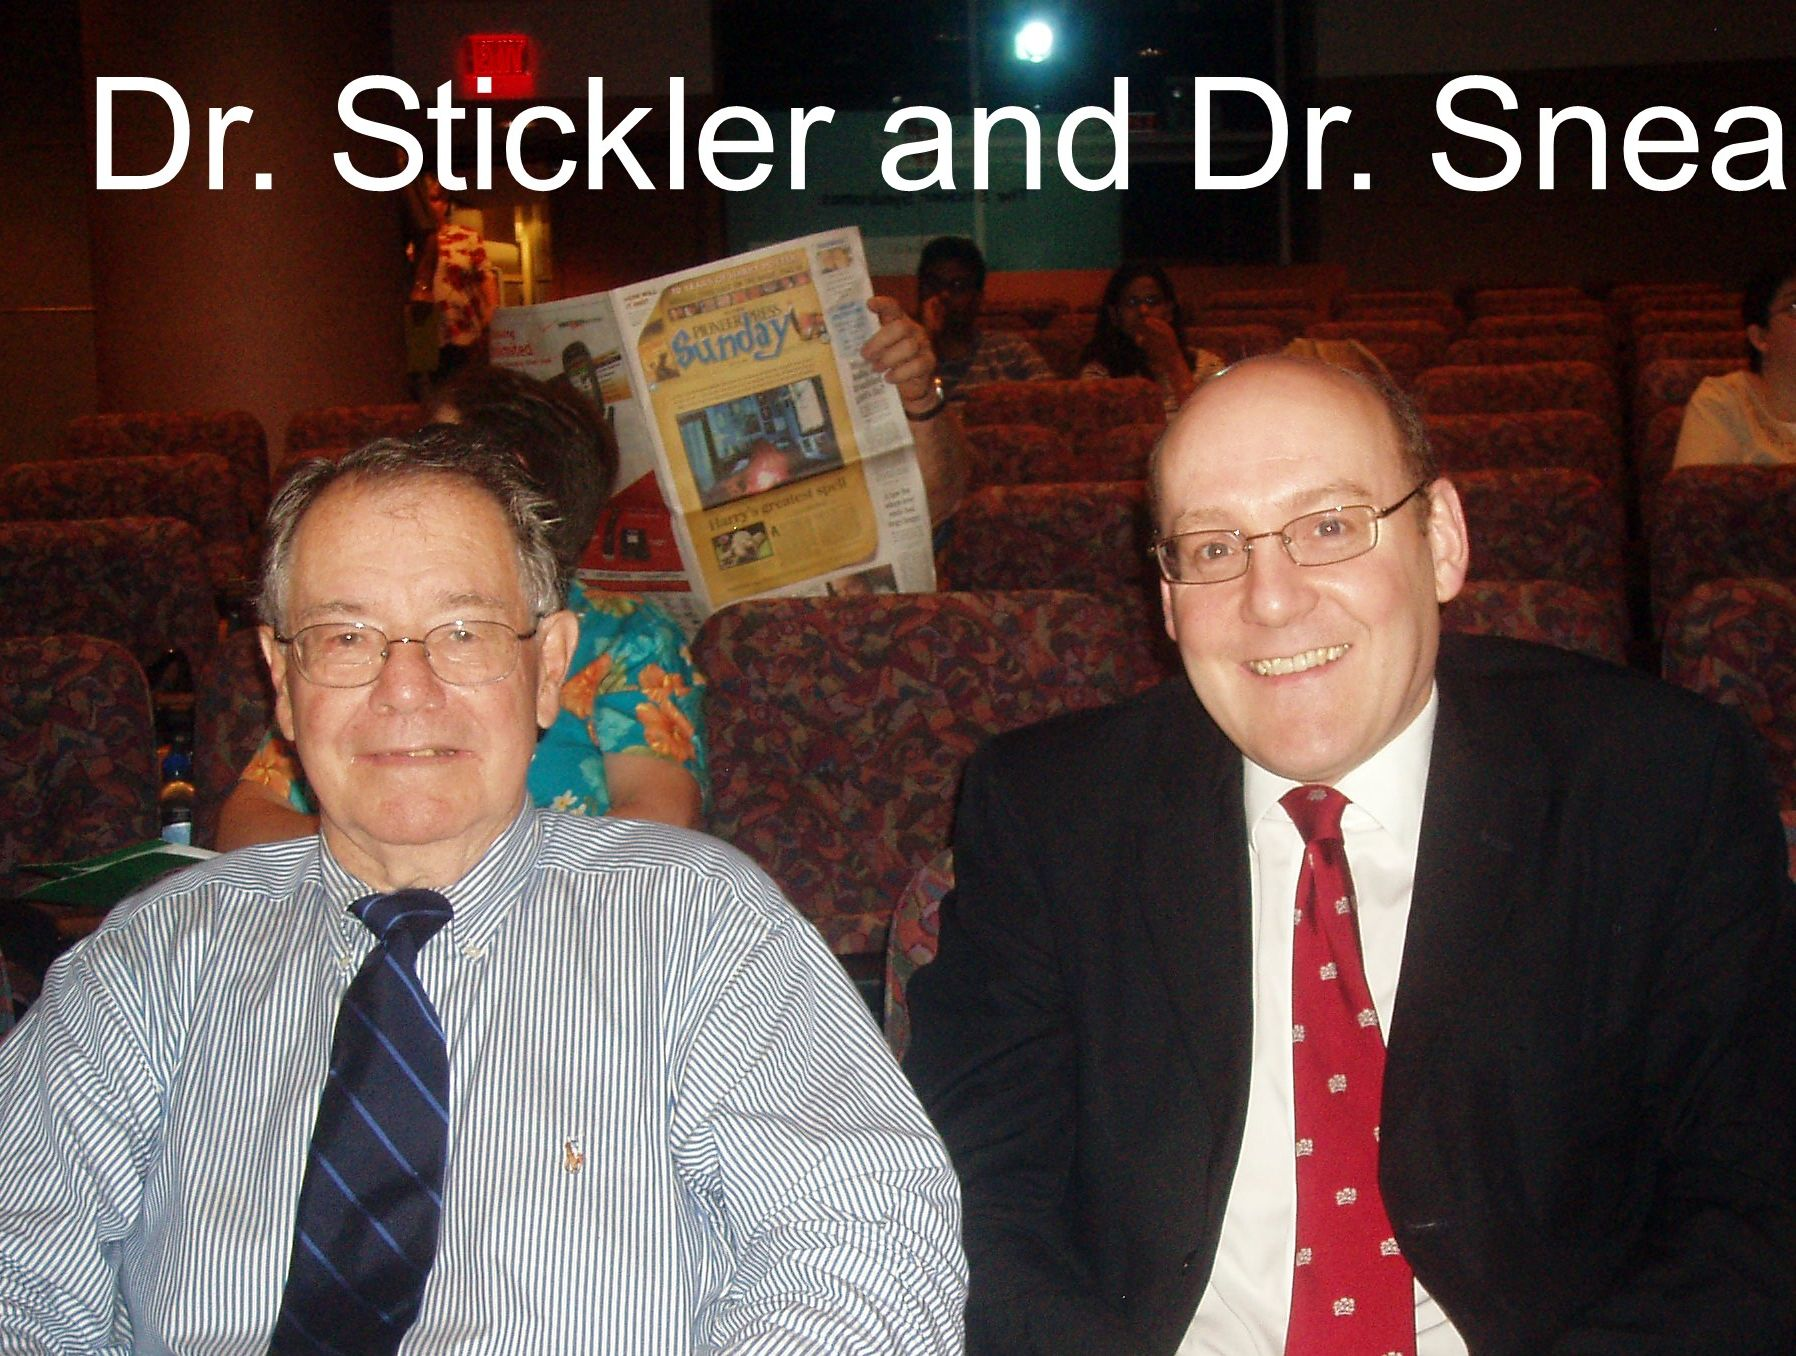 Dr Stickler & Dr Snead@Mayo Clinic